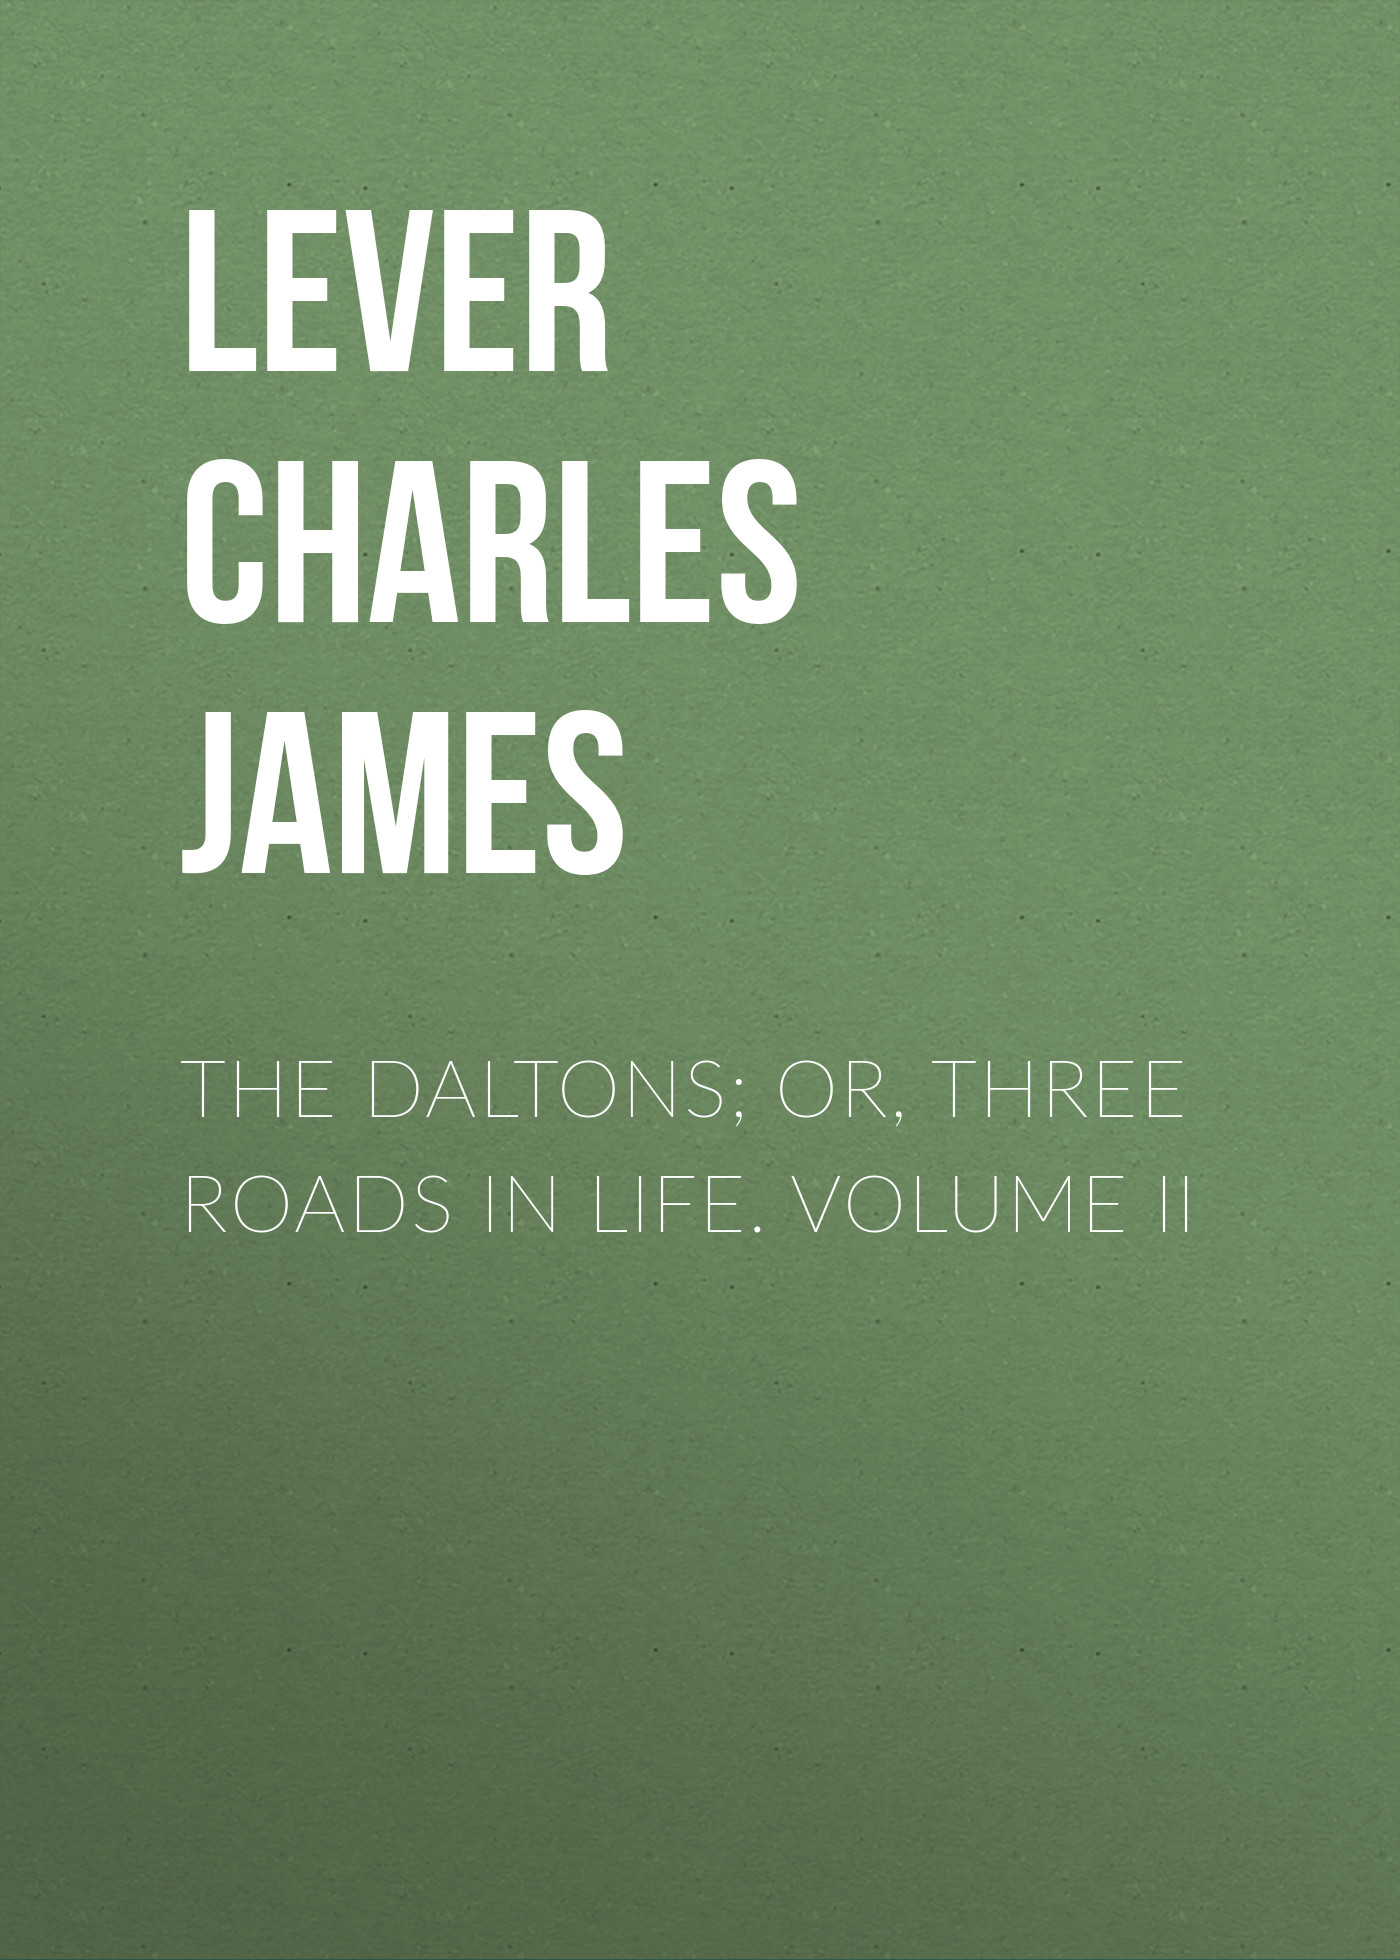 Lever Charles James The Daltons; Or, Three Roads In Life. Volume II купить недорого в Москве